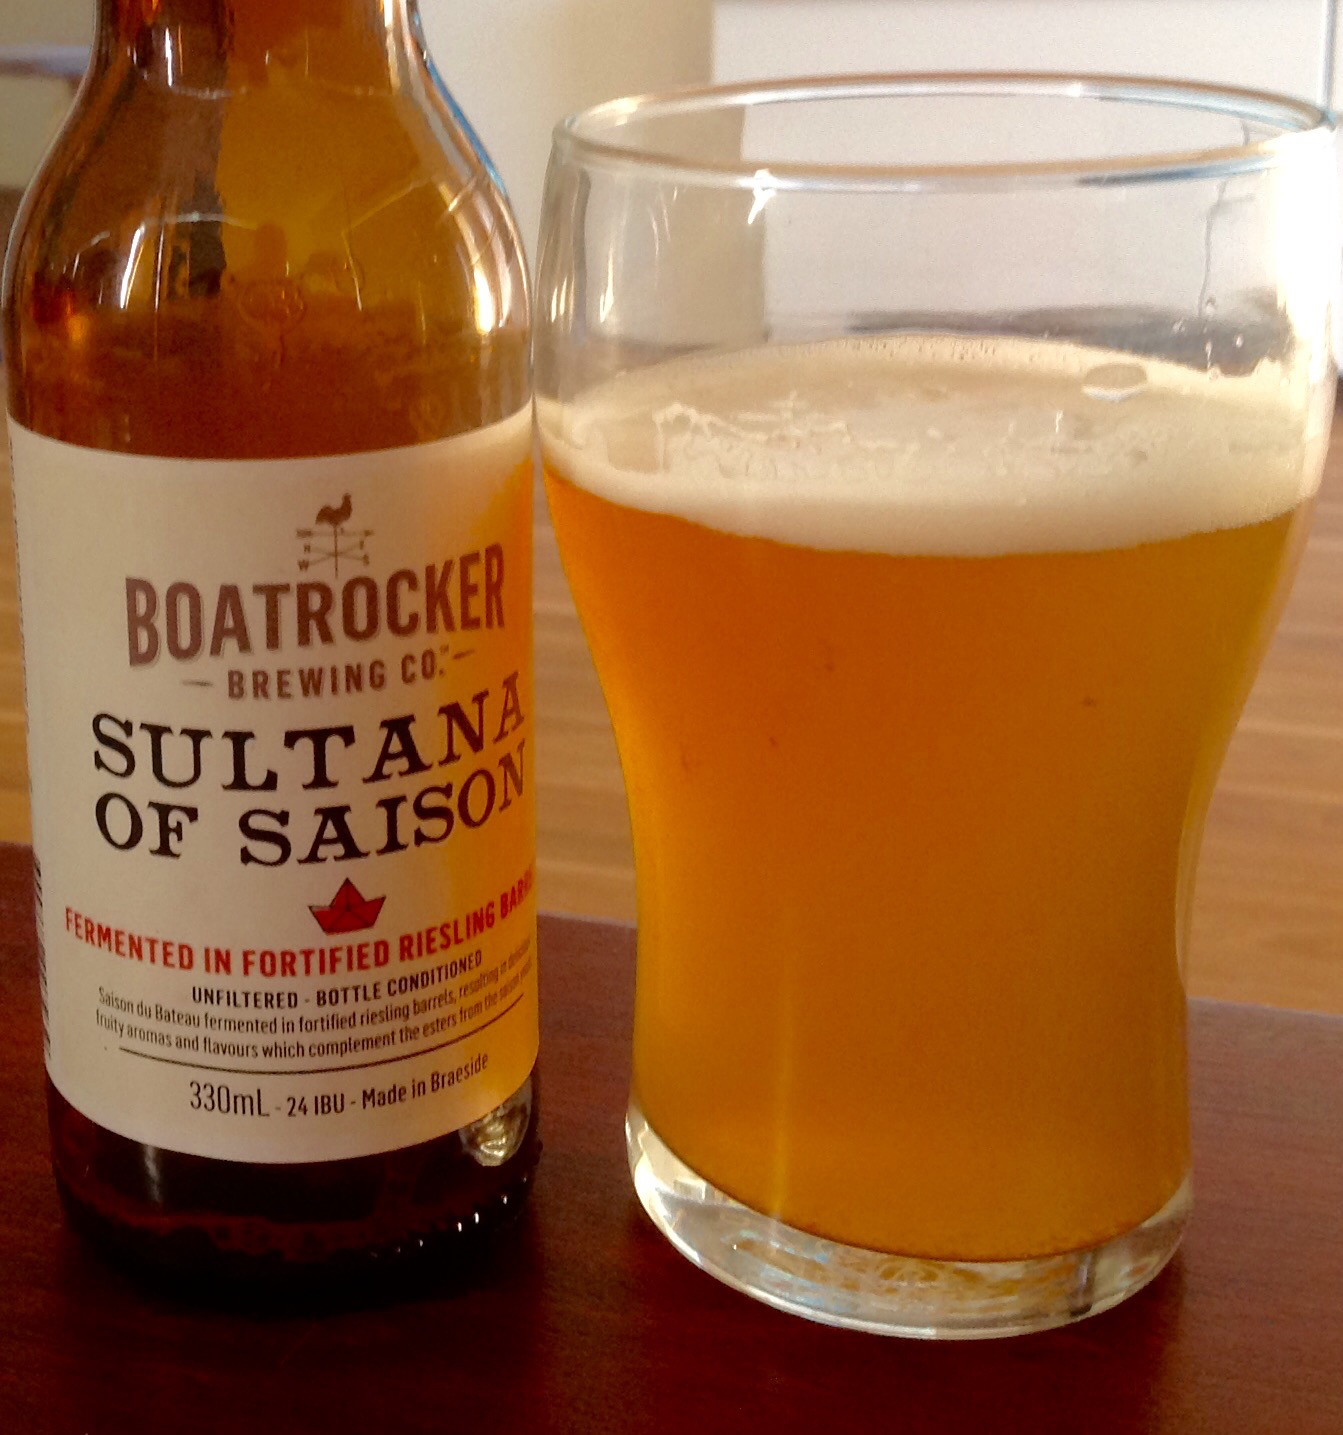 Boatrocker Sultan Of Saison (6.4% abv): These Melbourne brewers use fortified Riesling barrels to infuse their Saison du Bateau with vinous and dried fruit notes. Superb!